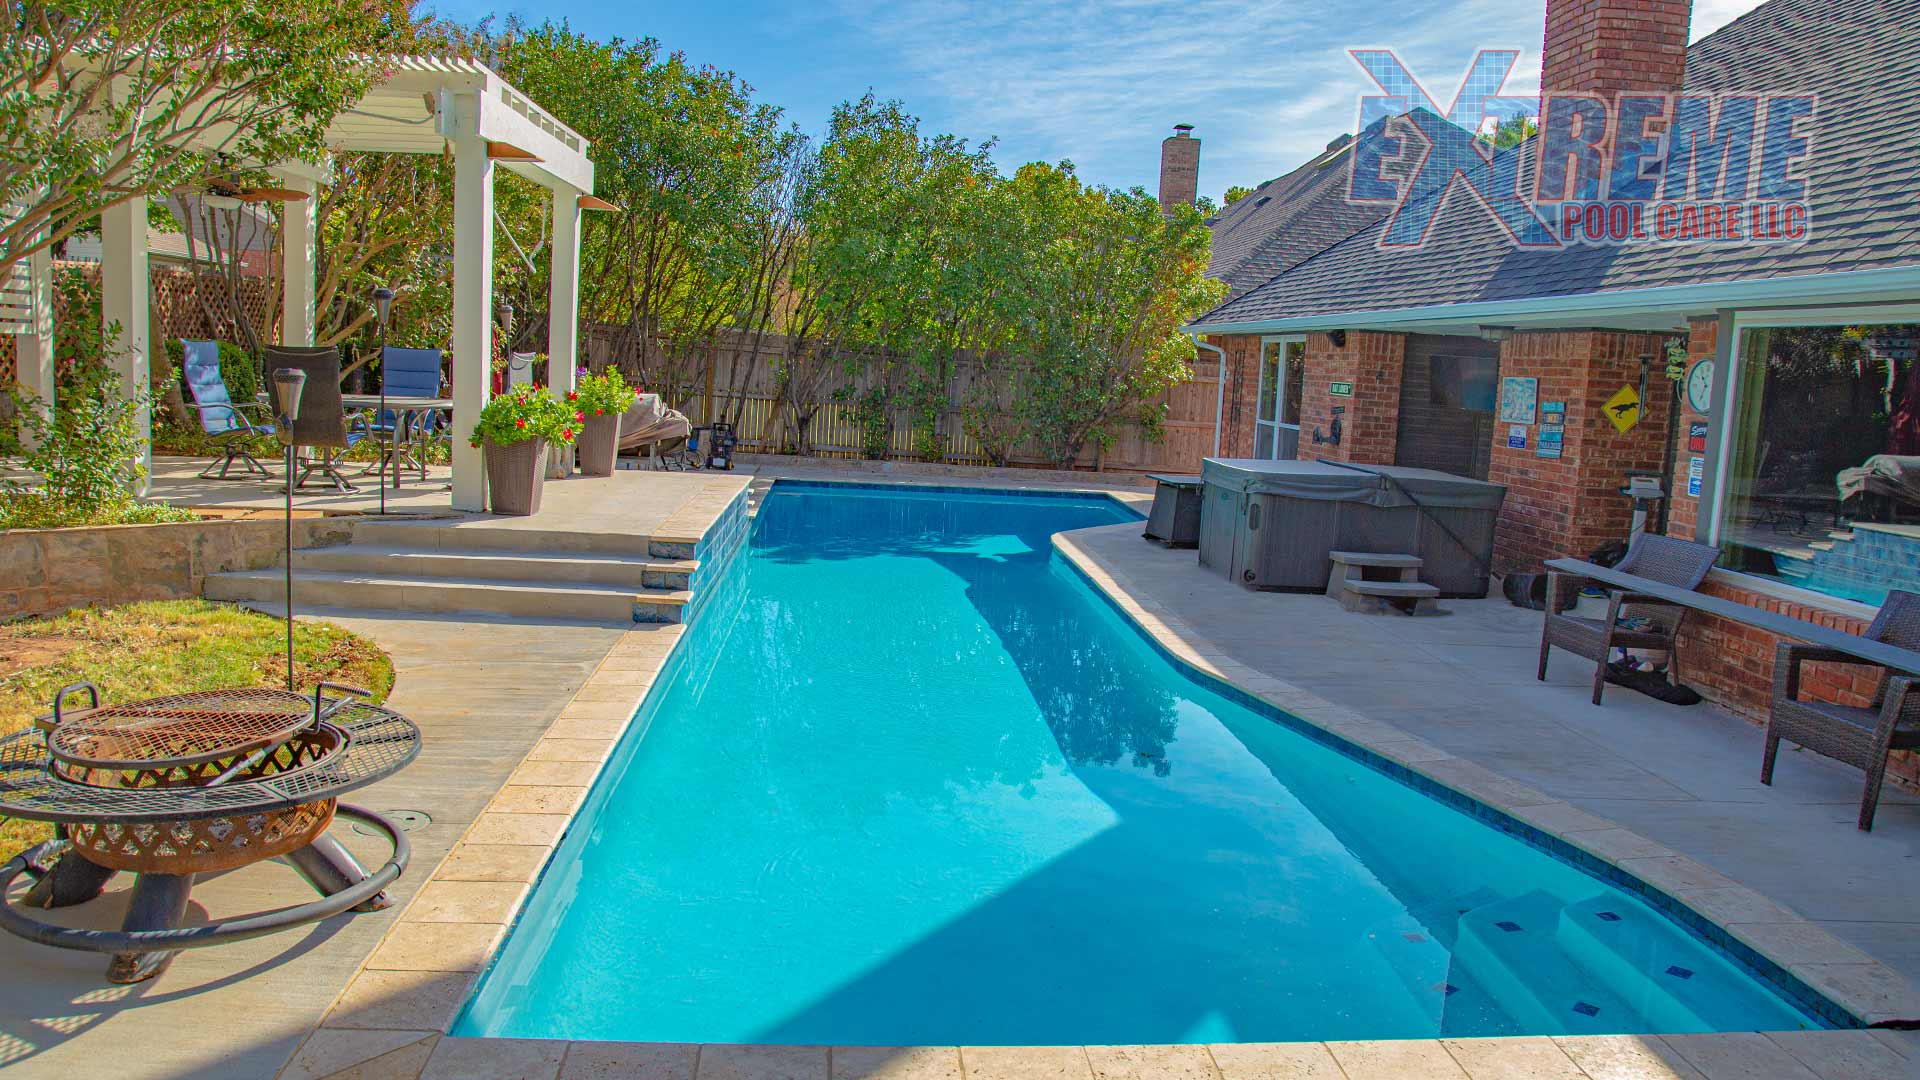 Extreme Pool Care LLC Remodeling in Oklahoma City